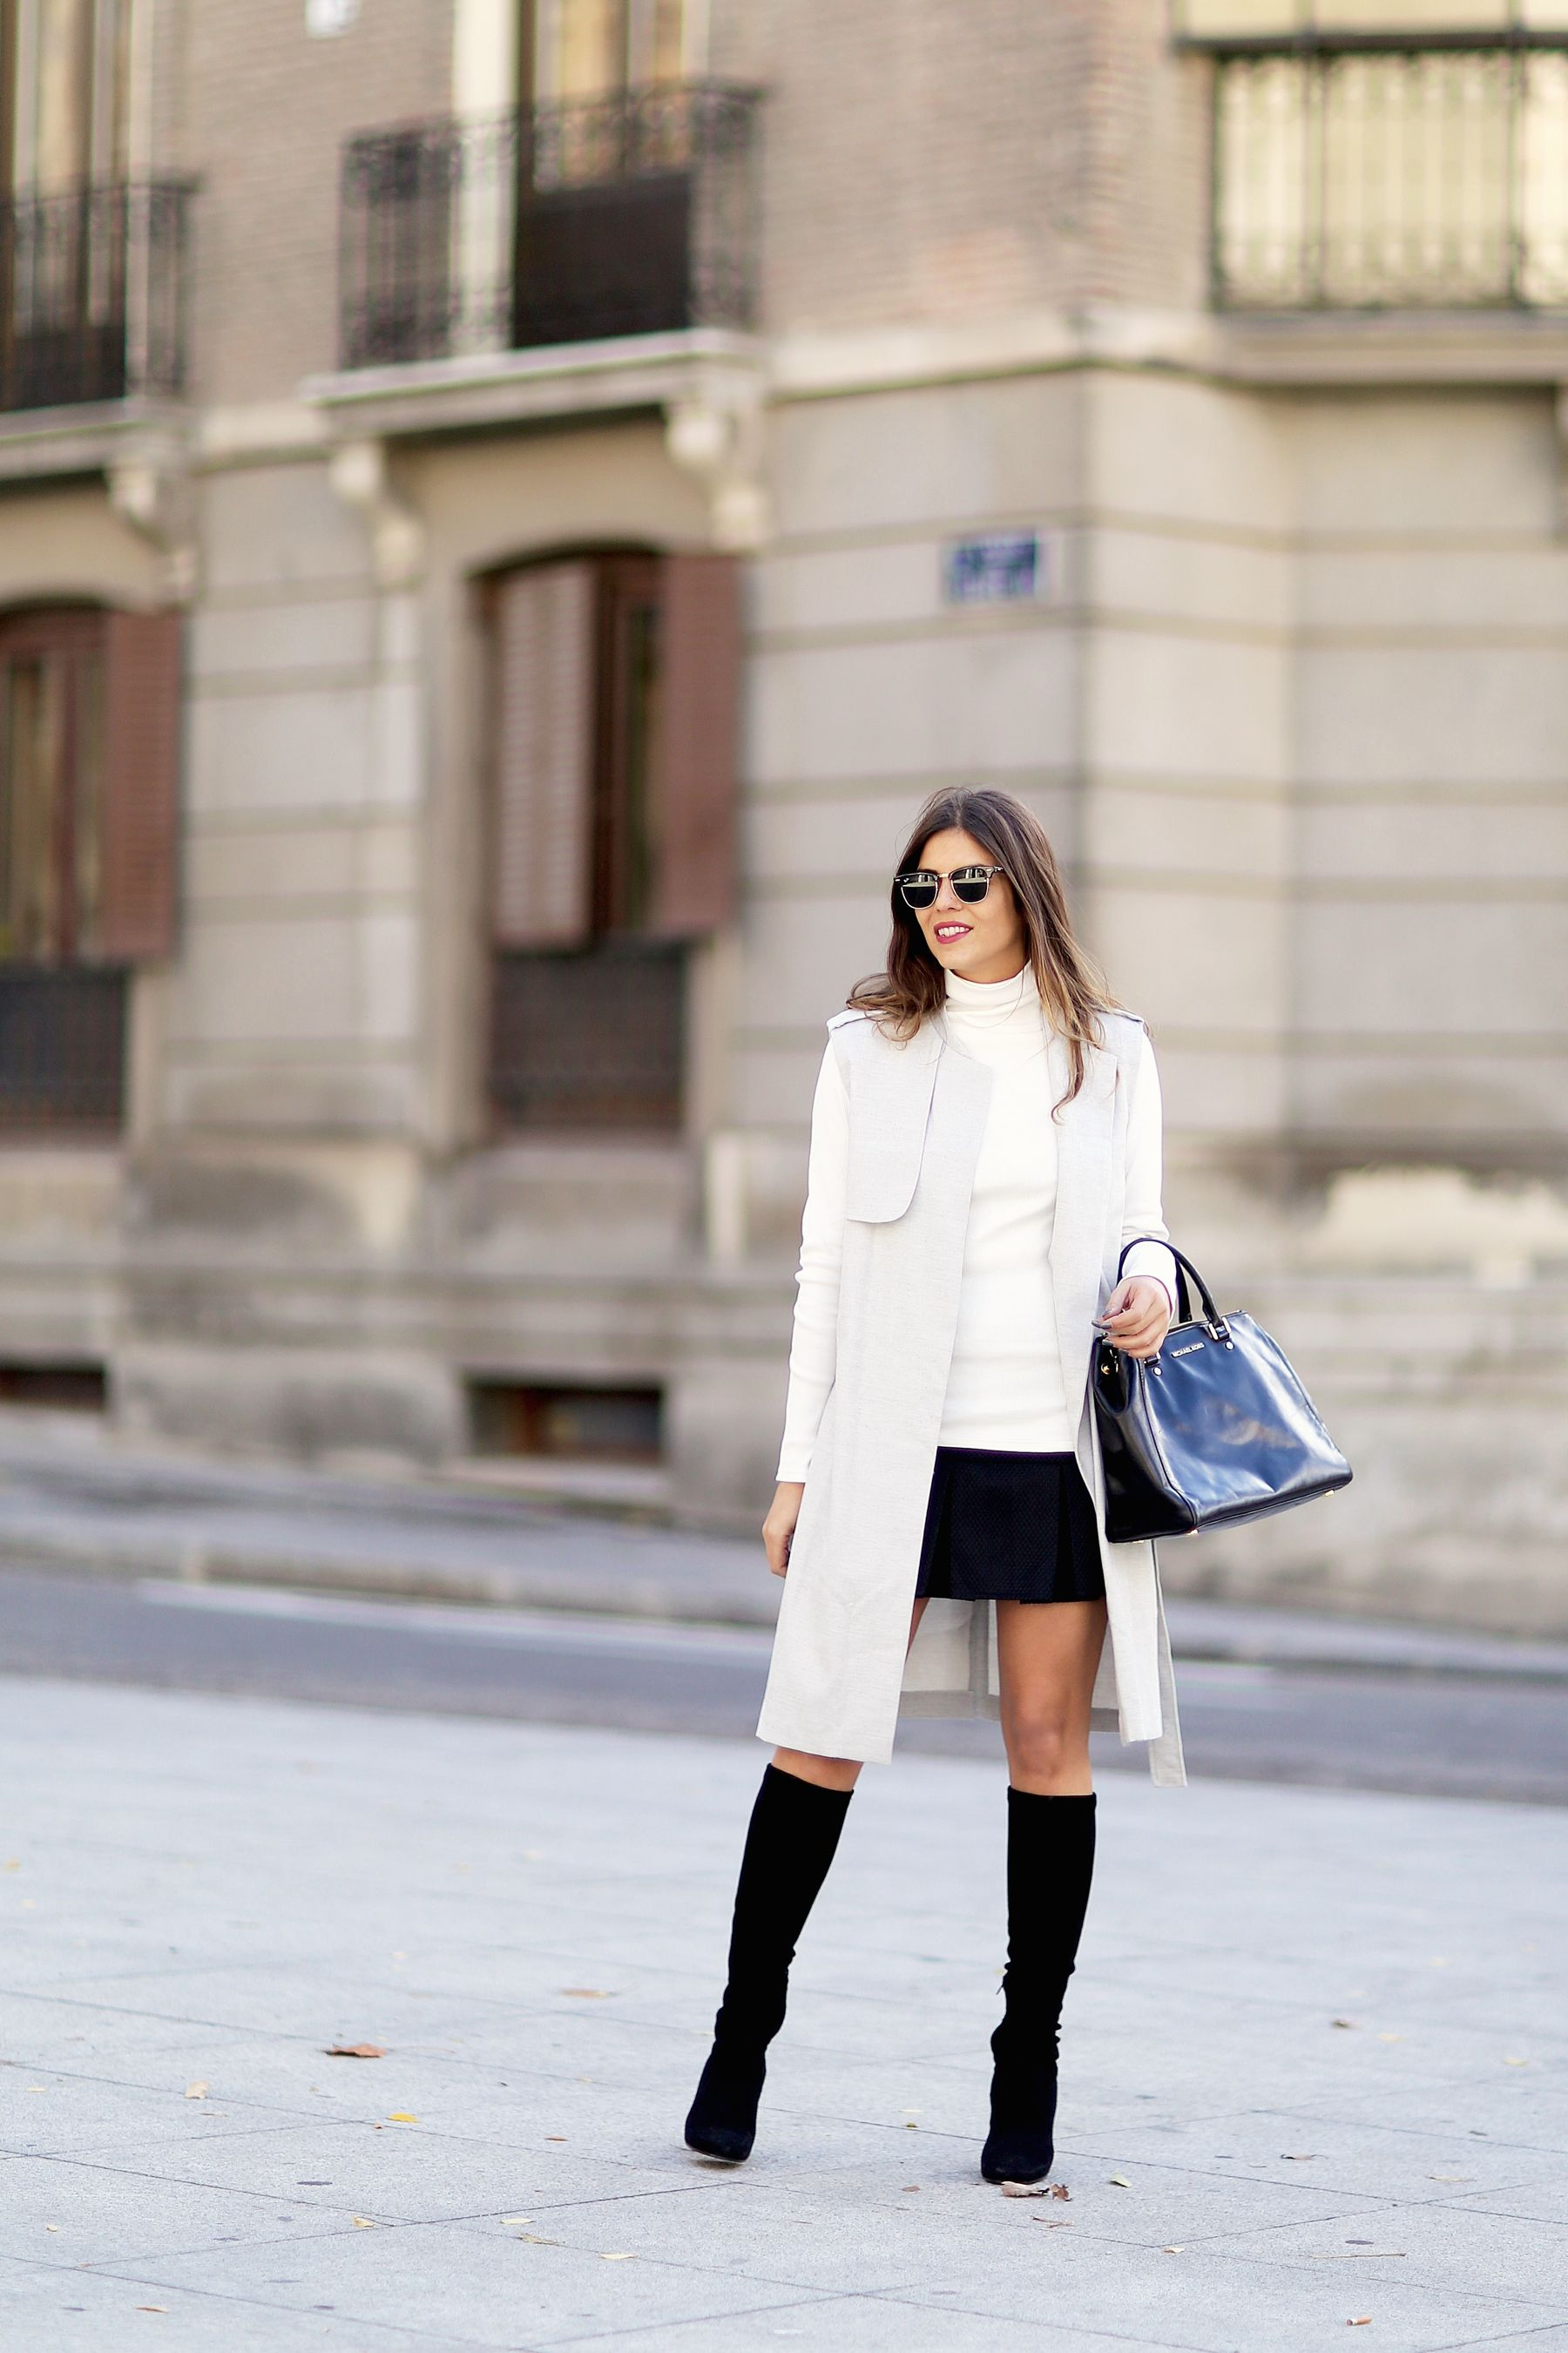 Natalia Cabezas looks uber sophisticated in head to toe monochrome. Skirt: Coosy, Sweater: La Petite Francaise, Vest: Asos, Boots: Uterqüe.